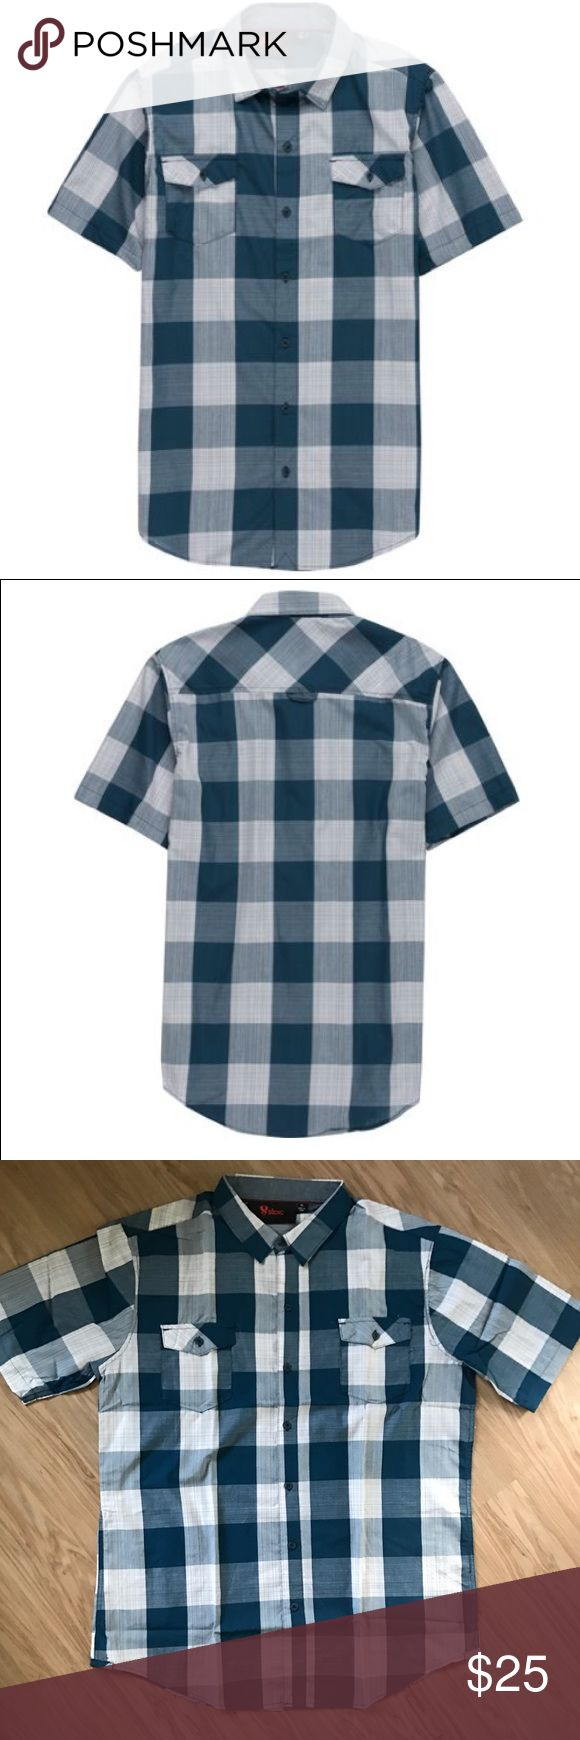 "Stoic Allegheny Plaid Button Up Size XL NEW Keep that dreadful east coast humidity at bay with a little help from the breezy Allegheny Shirt for Men by Stoic. This timeless button-up features short sleeves for pure summer style, while the cotton fabric lends a comfortable fit and feel. Pair with your go-to chino shorts or swim trunks for an equally laid-back look.       100% Cotton fabric lends a breezy feel Regular fit. Size XL. Flat lay measurement: 22"" chest 